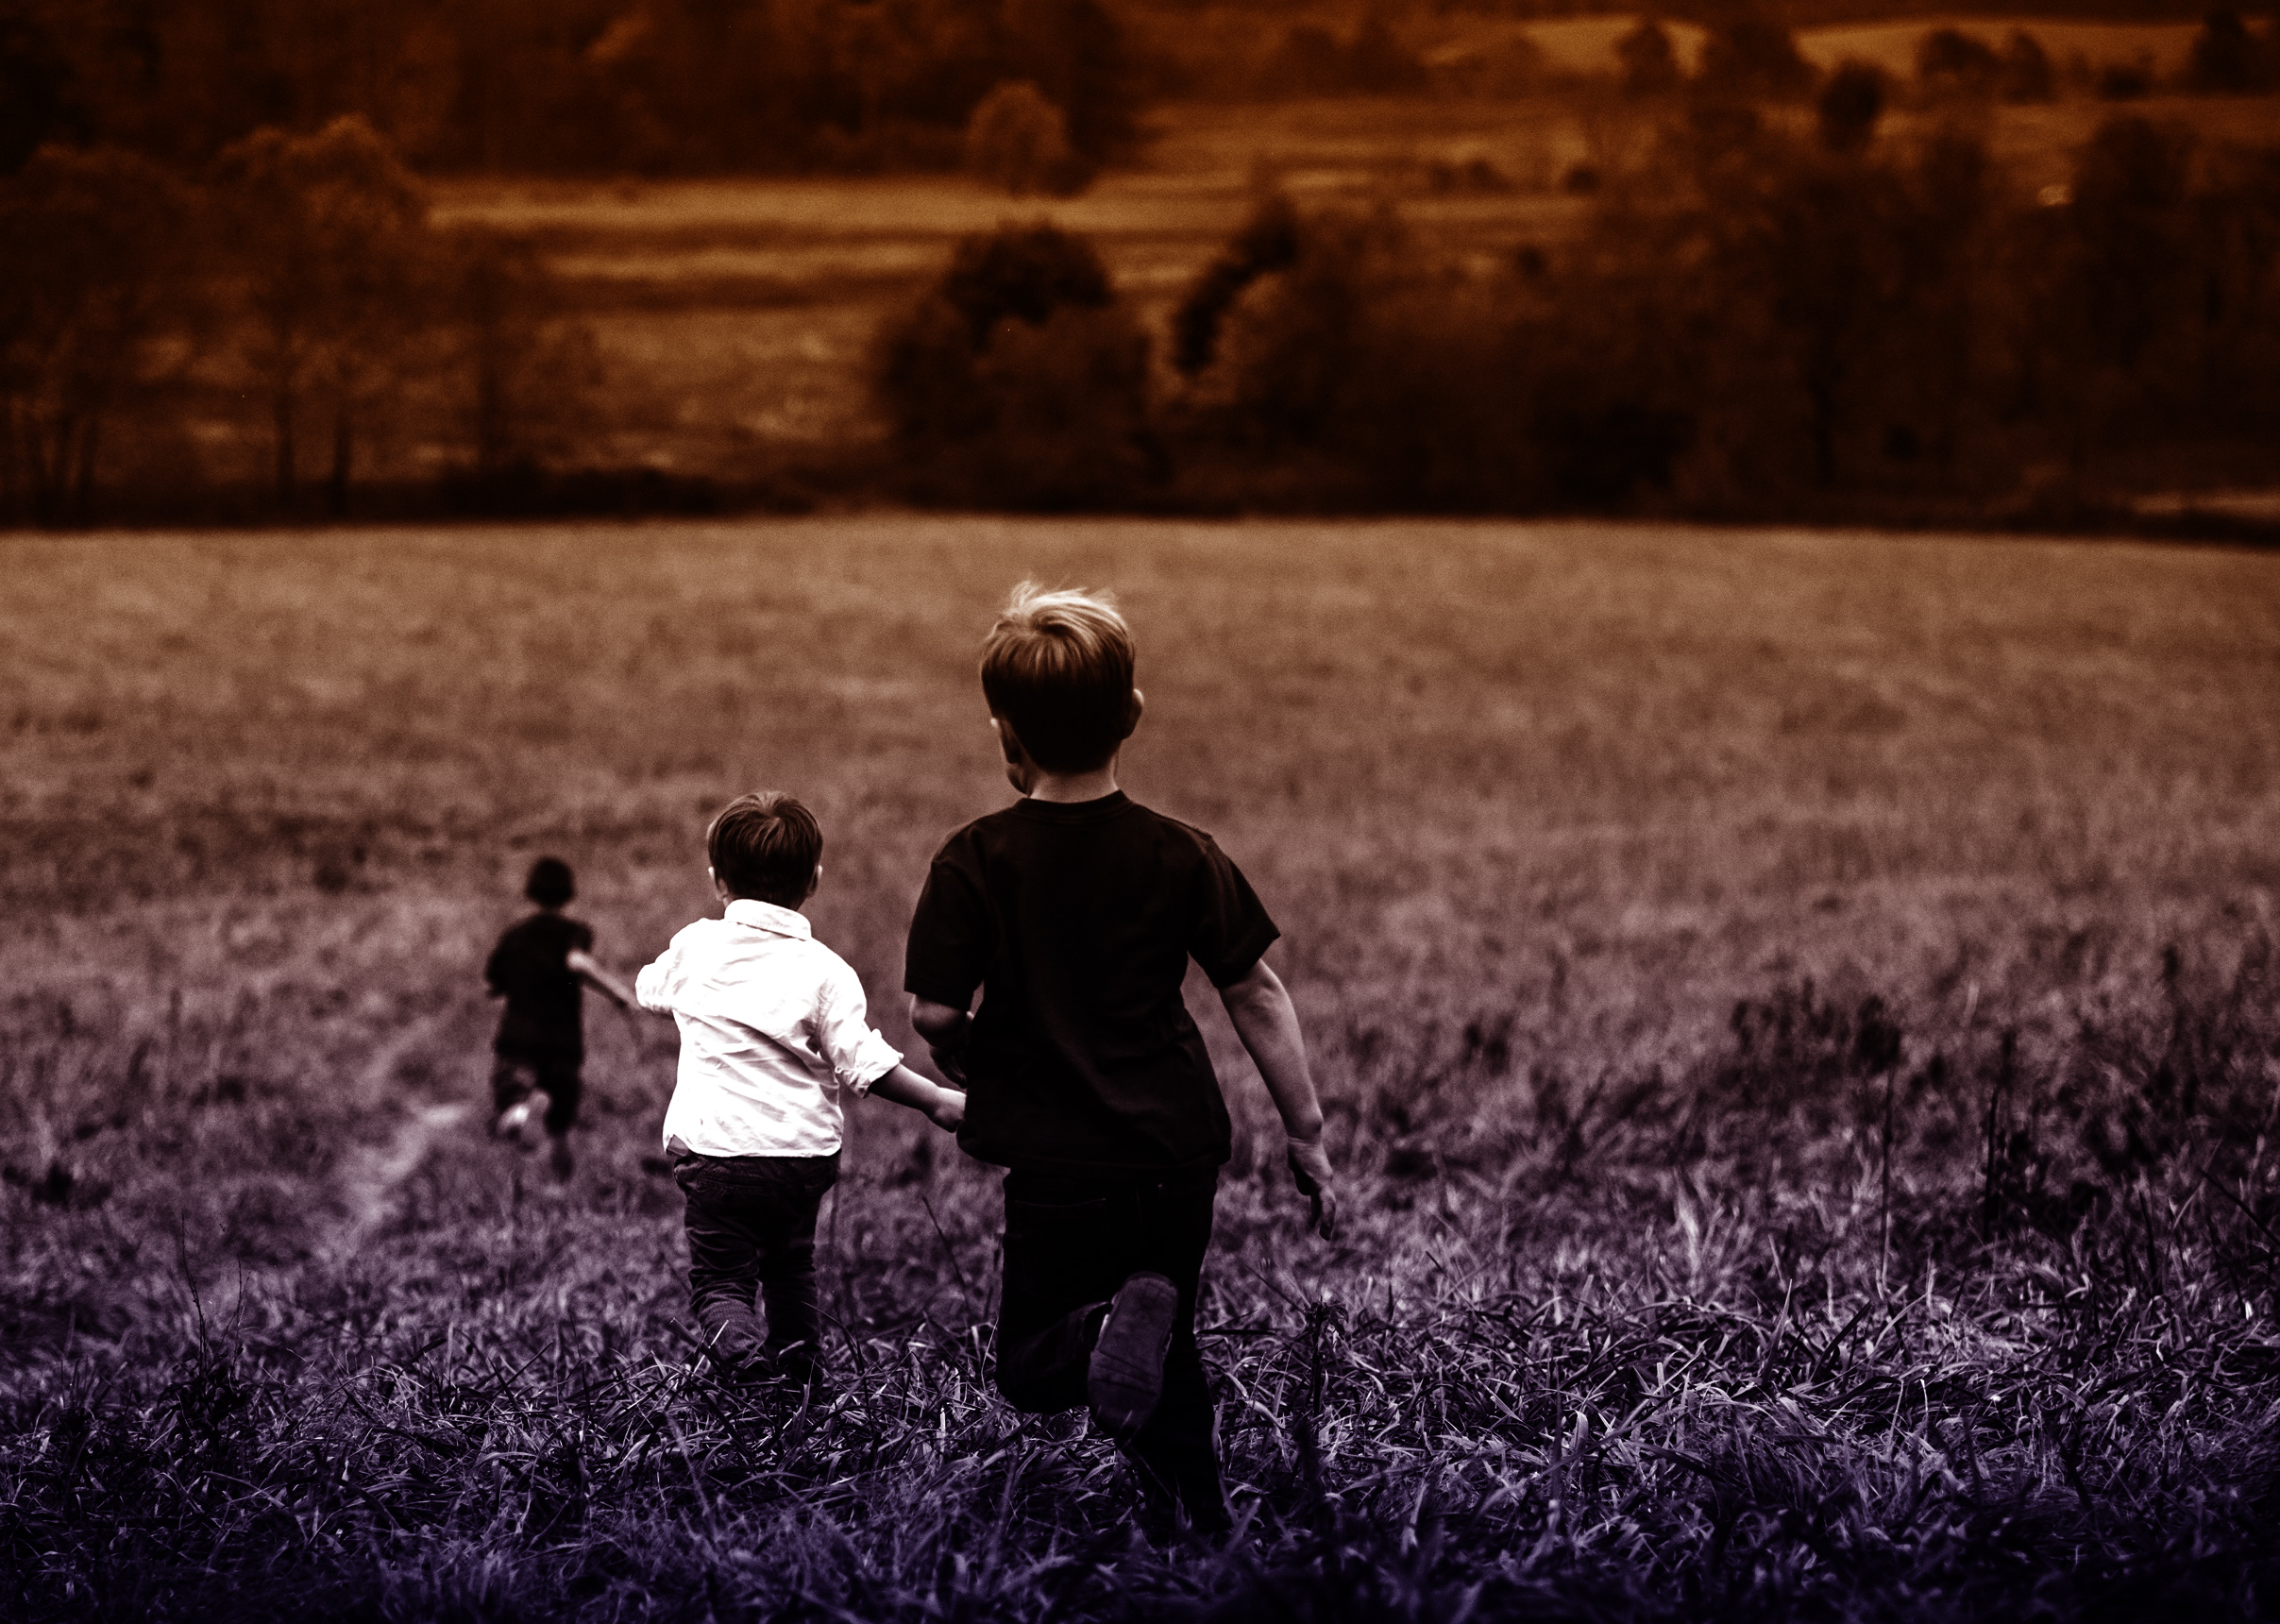 Boys Running Outdoors, Active, Preschool, Playing, Playful, HQ Photo